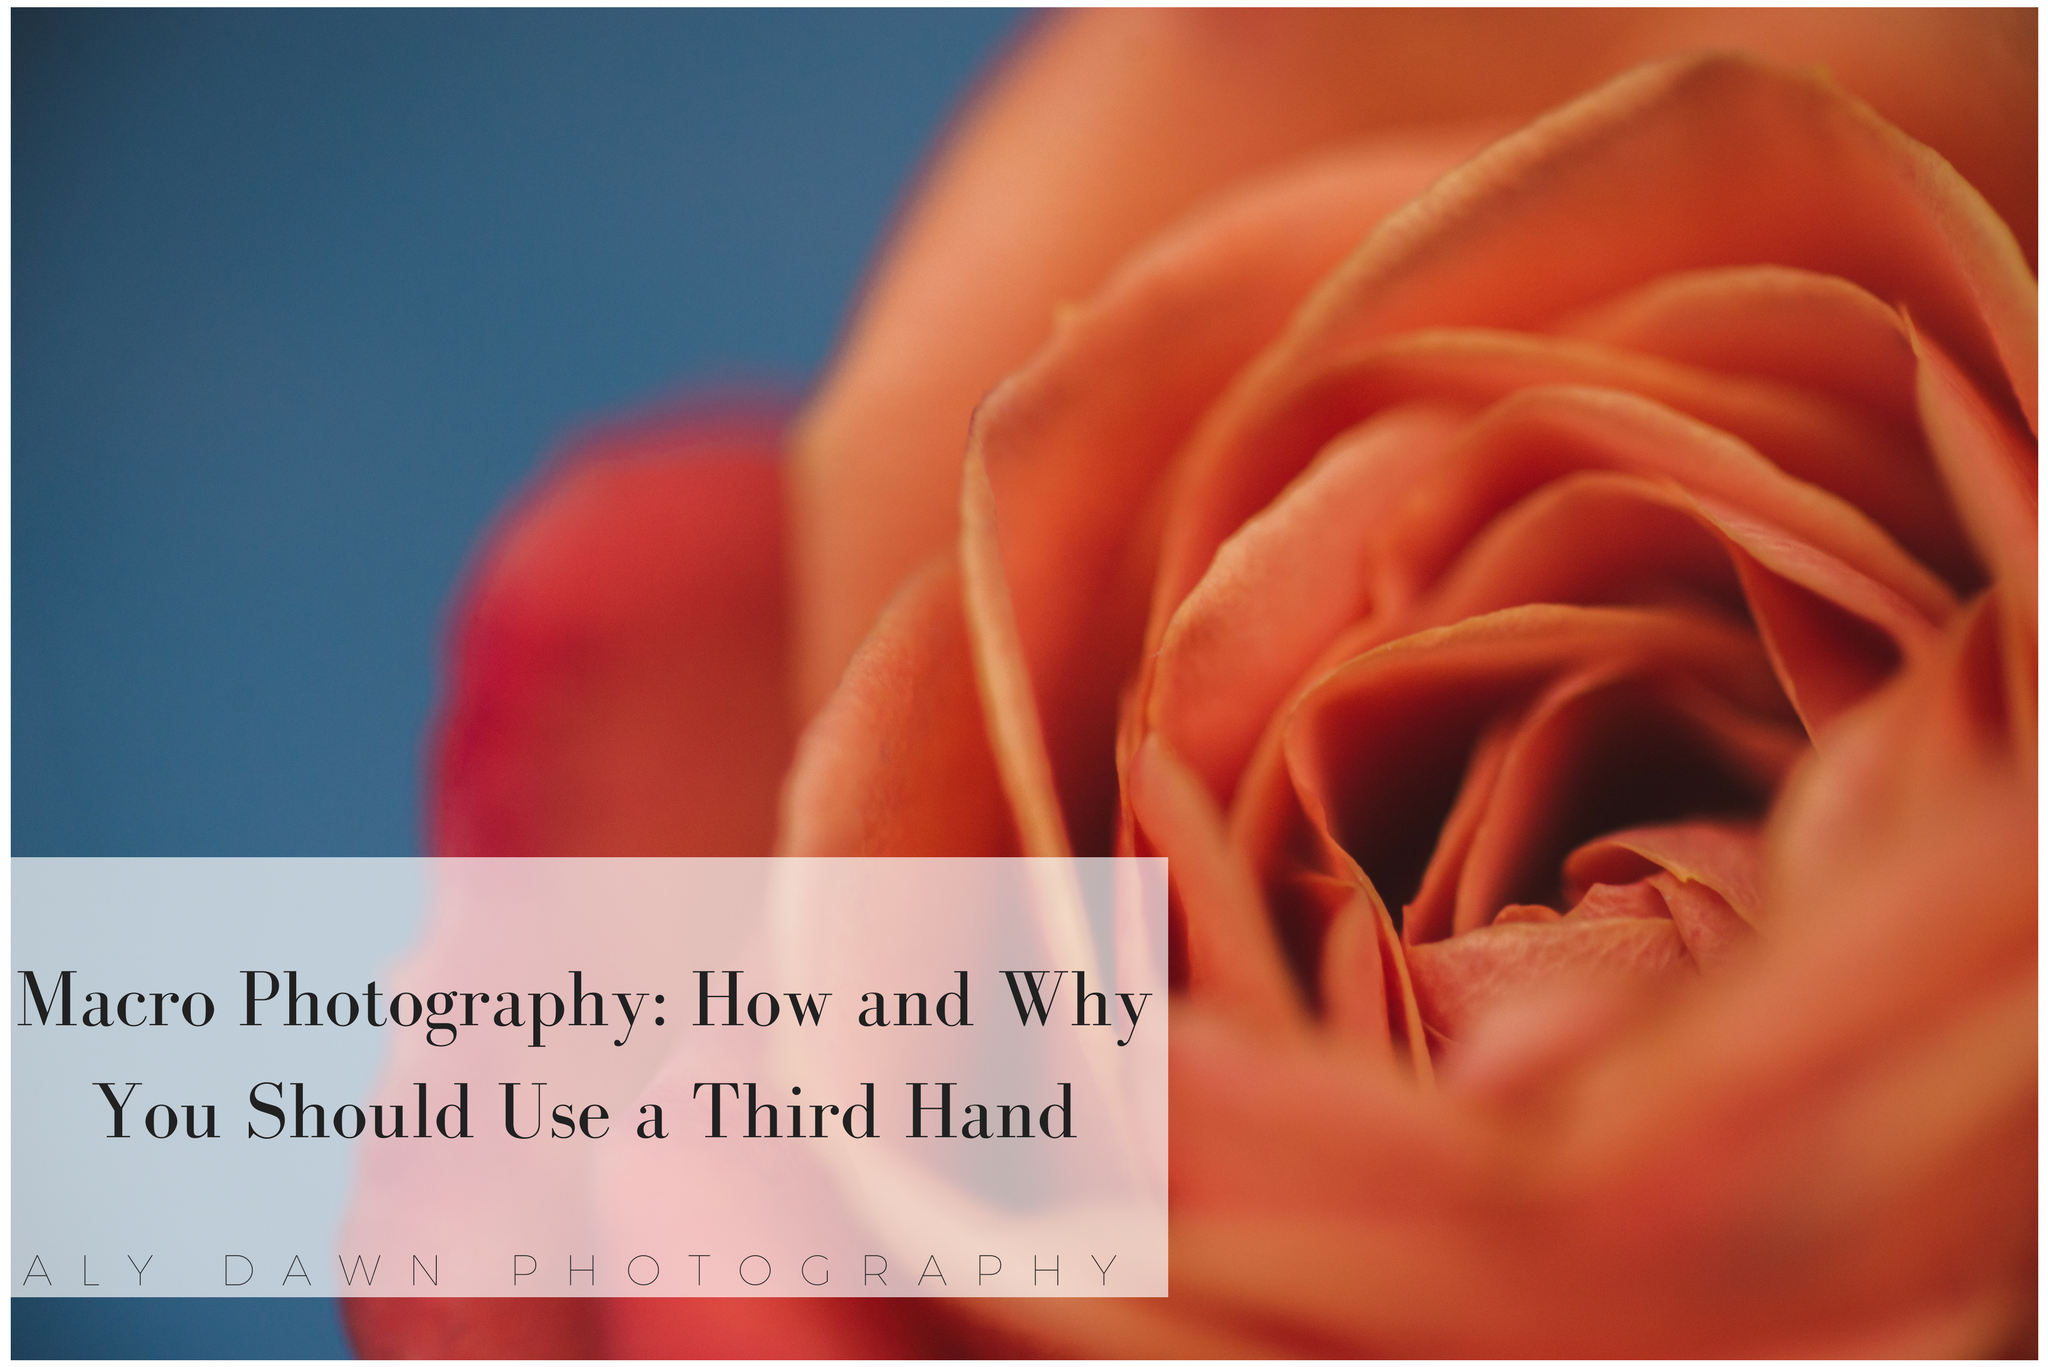 Macro Photography: How and Why You Should Use a Third Hand